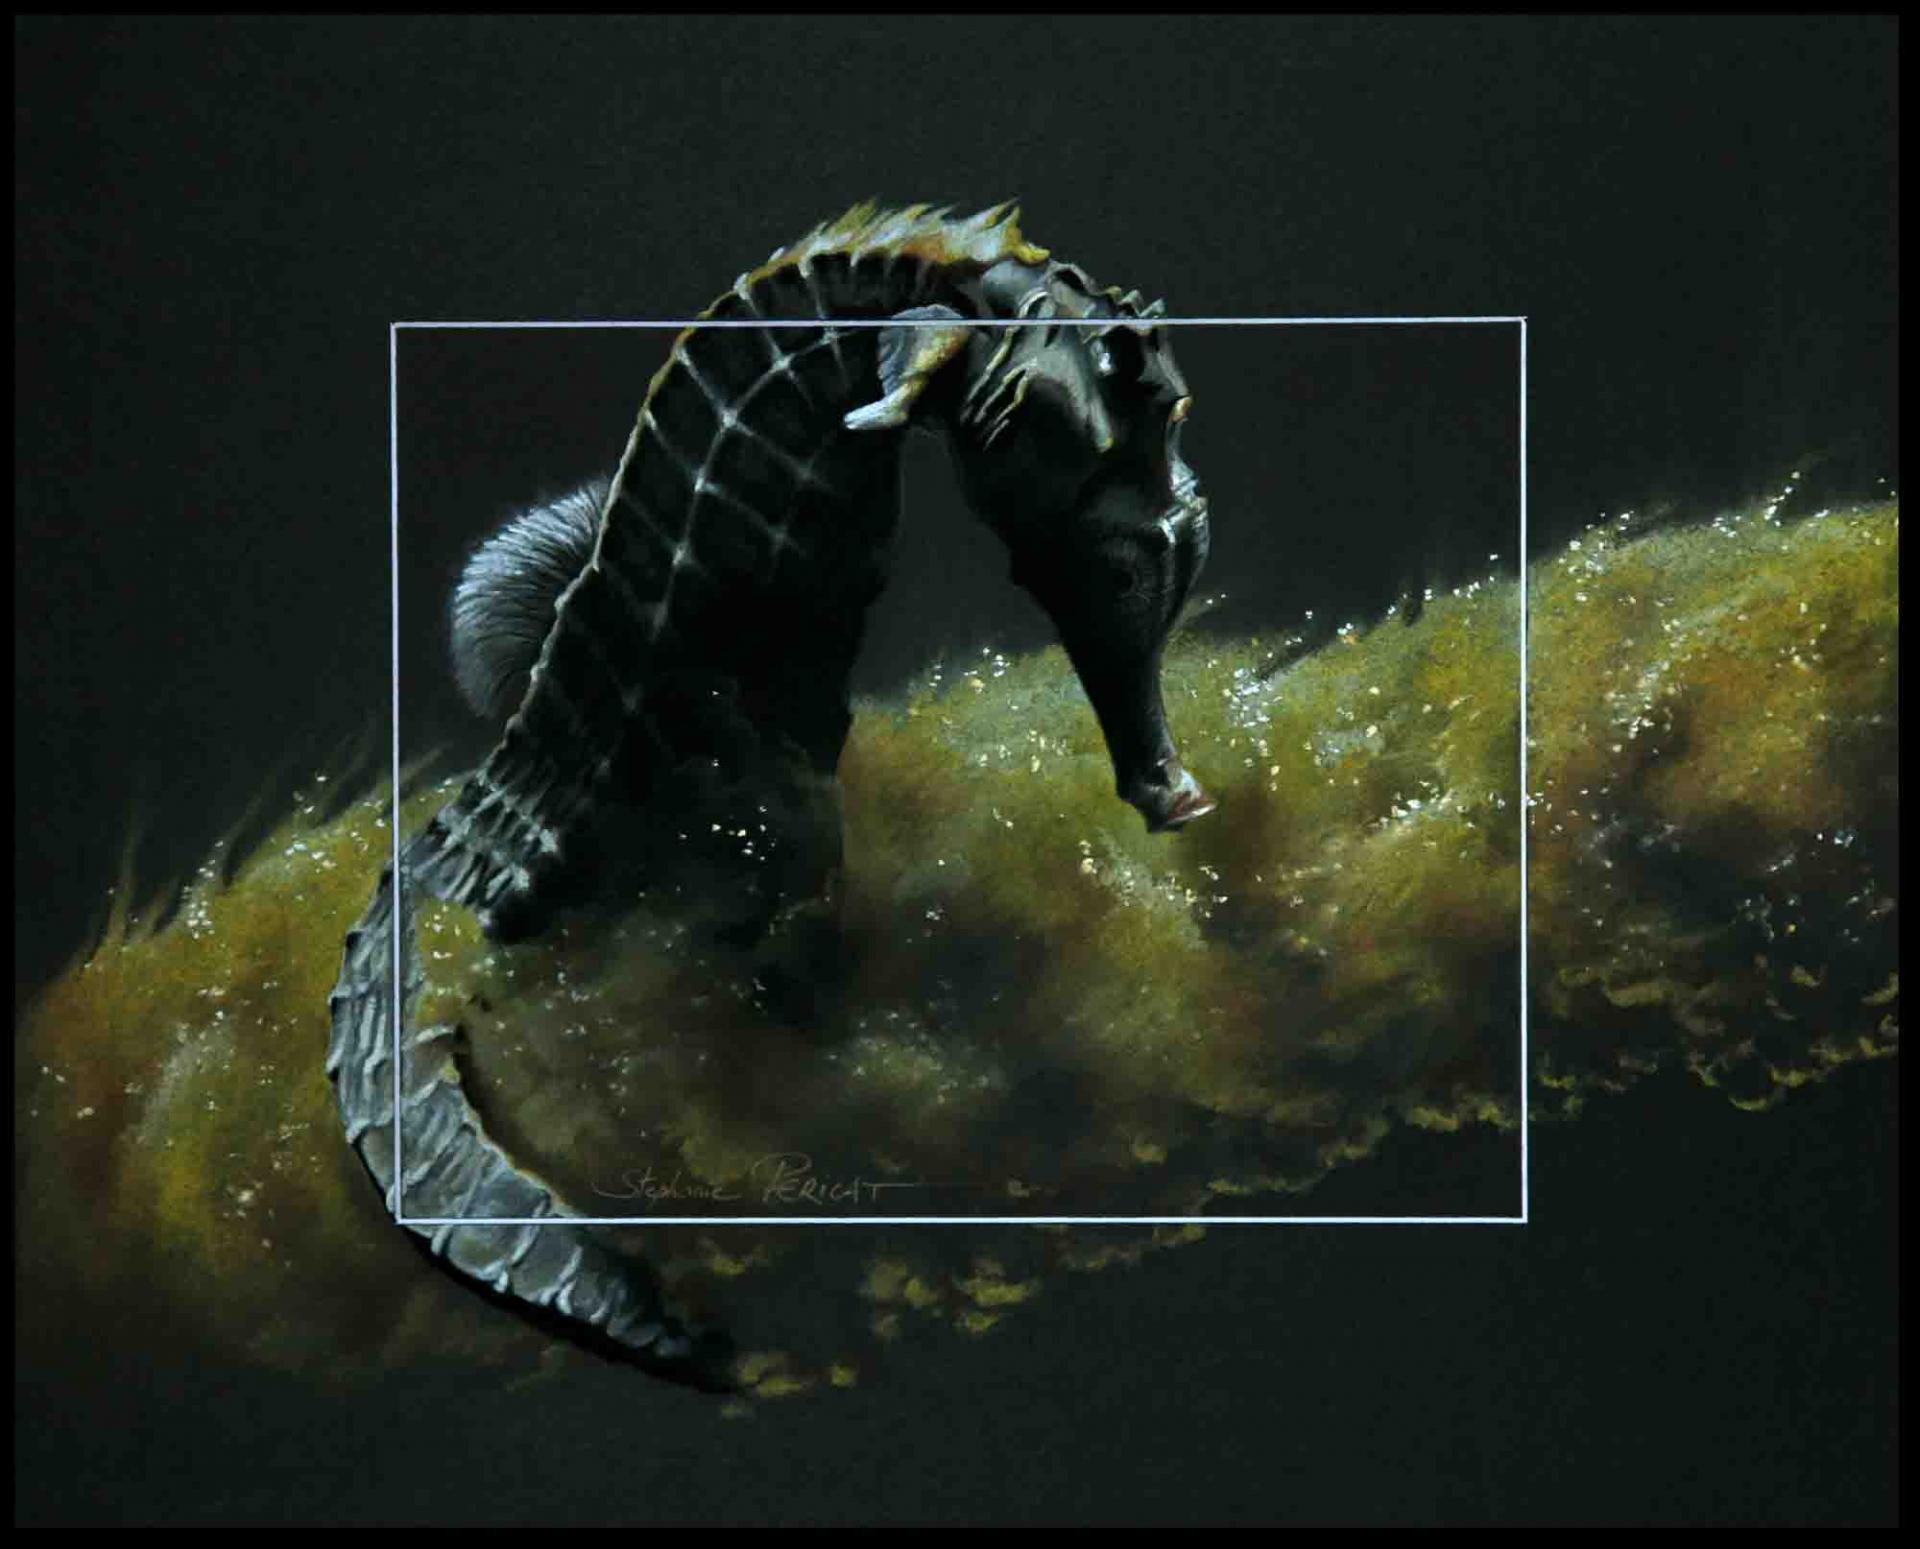 Oceanos Hippocampus I - 40x50cm - AV for sale